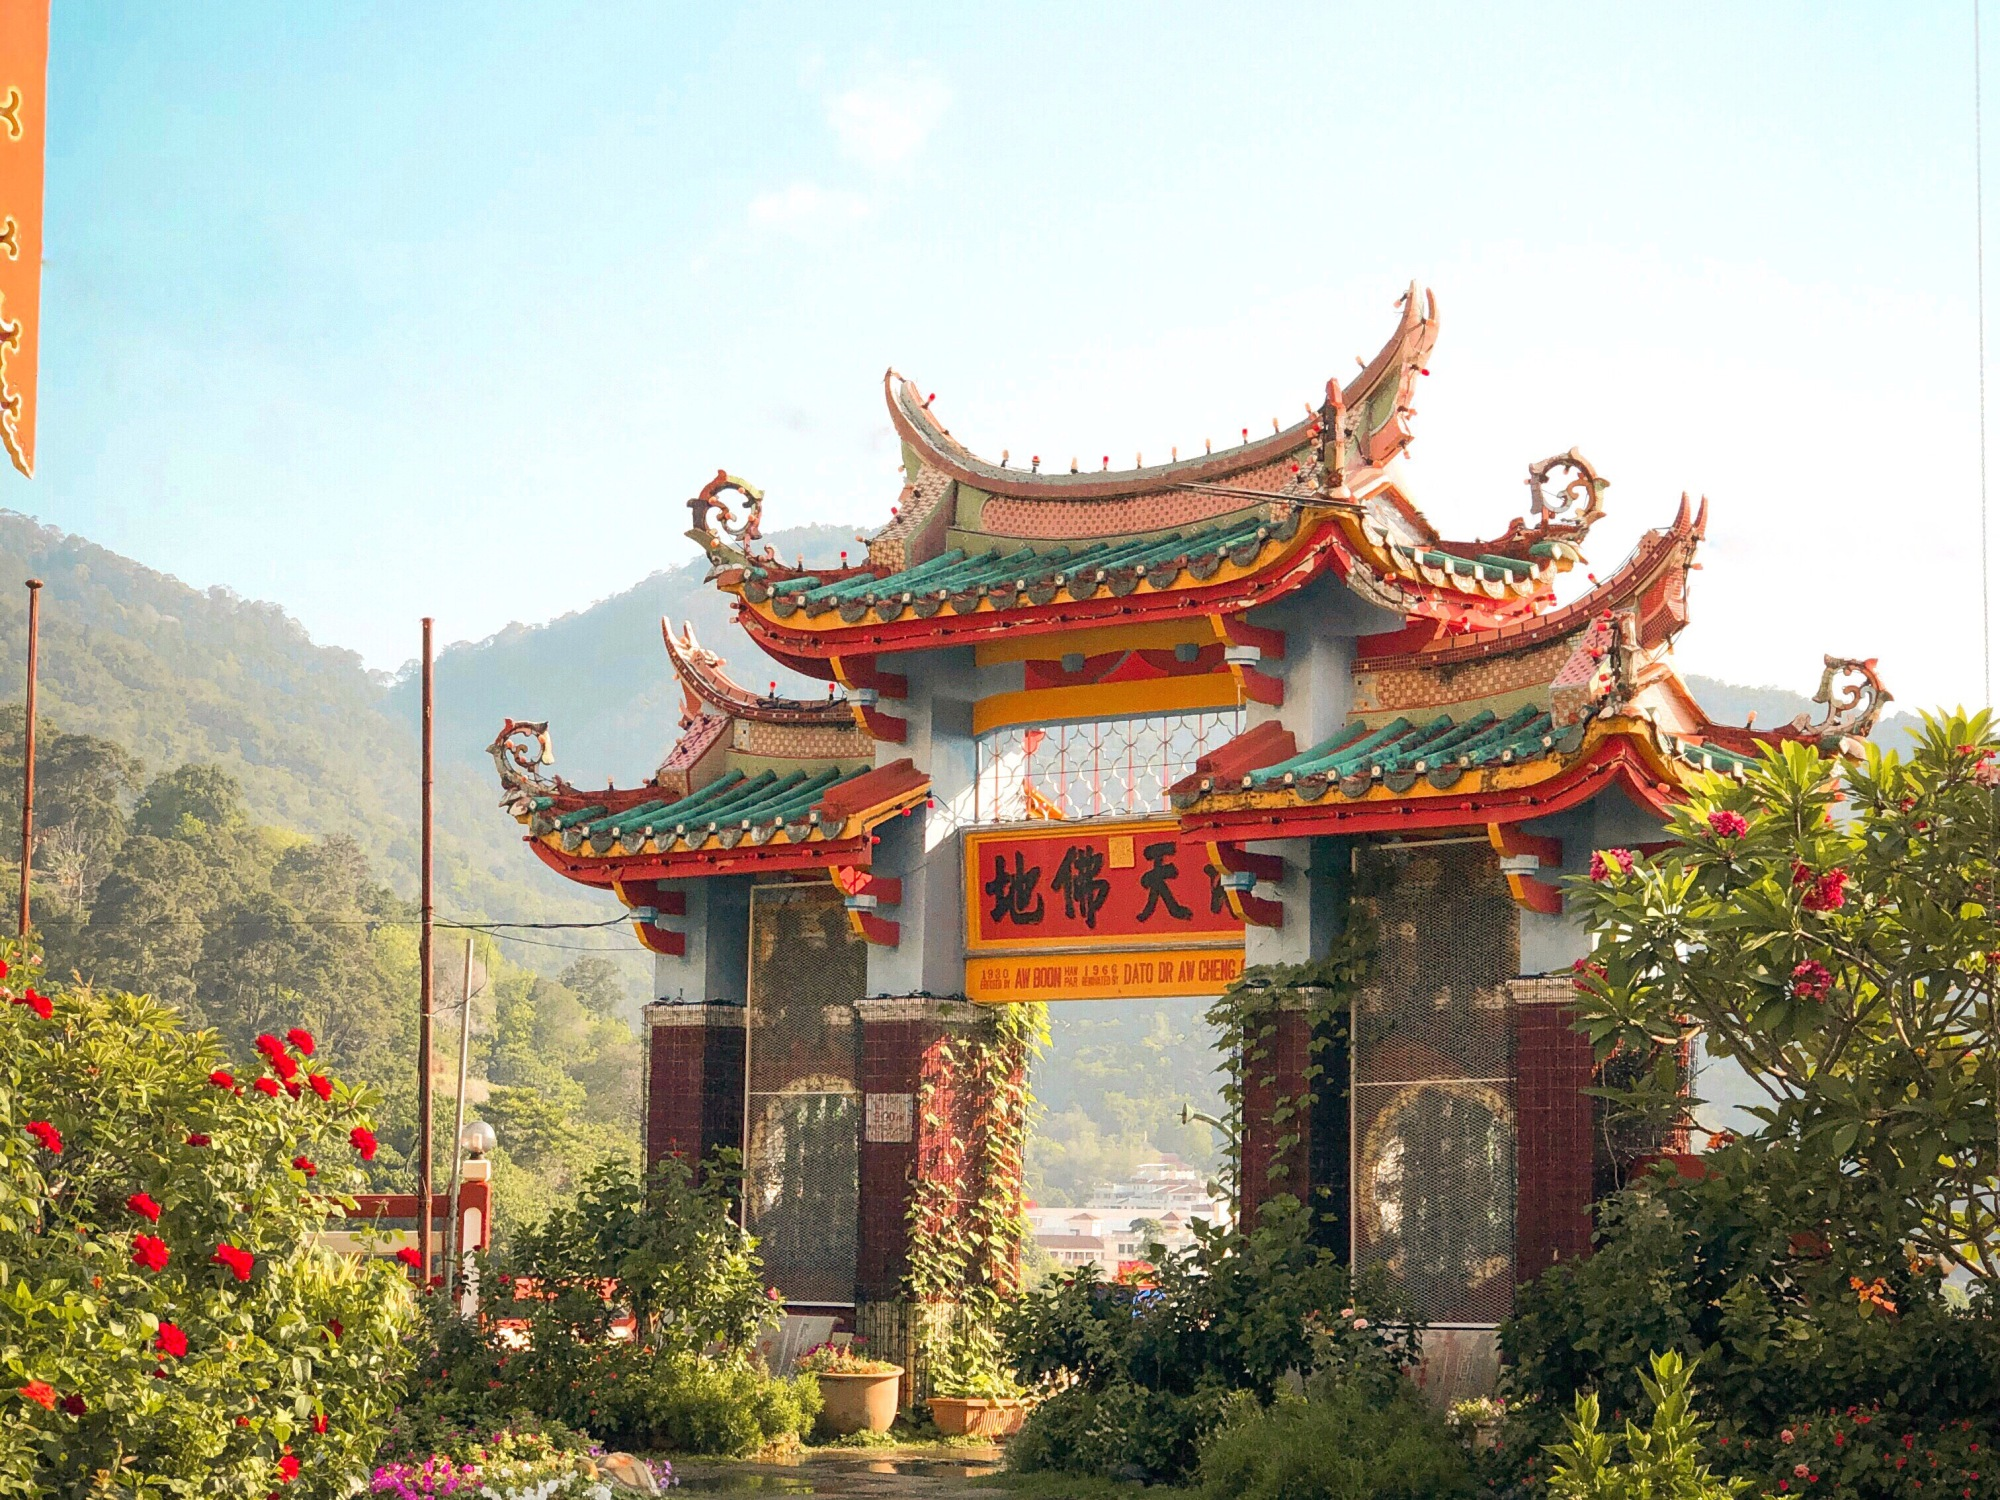 the-nat-channel-natventures-malaysia-penang-kek-lok-si-temple-arch